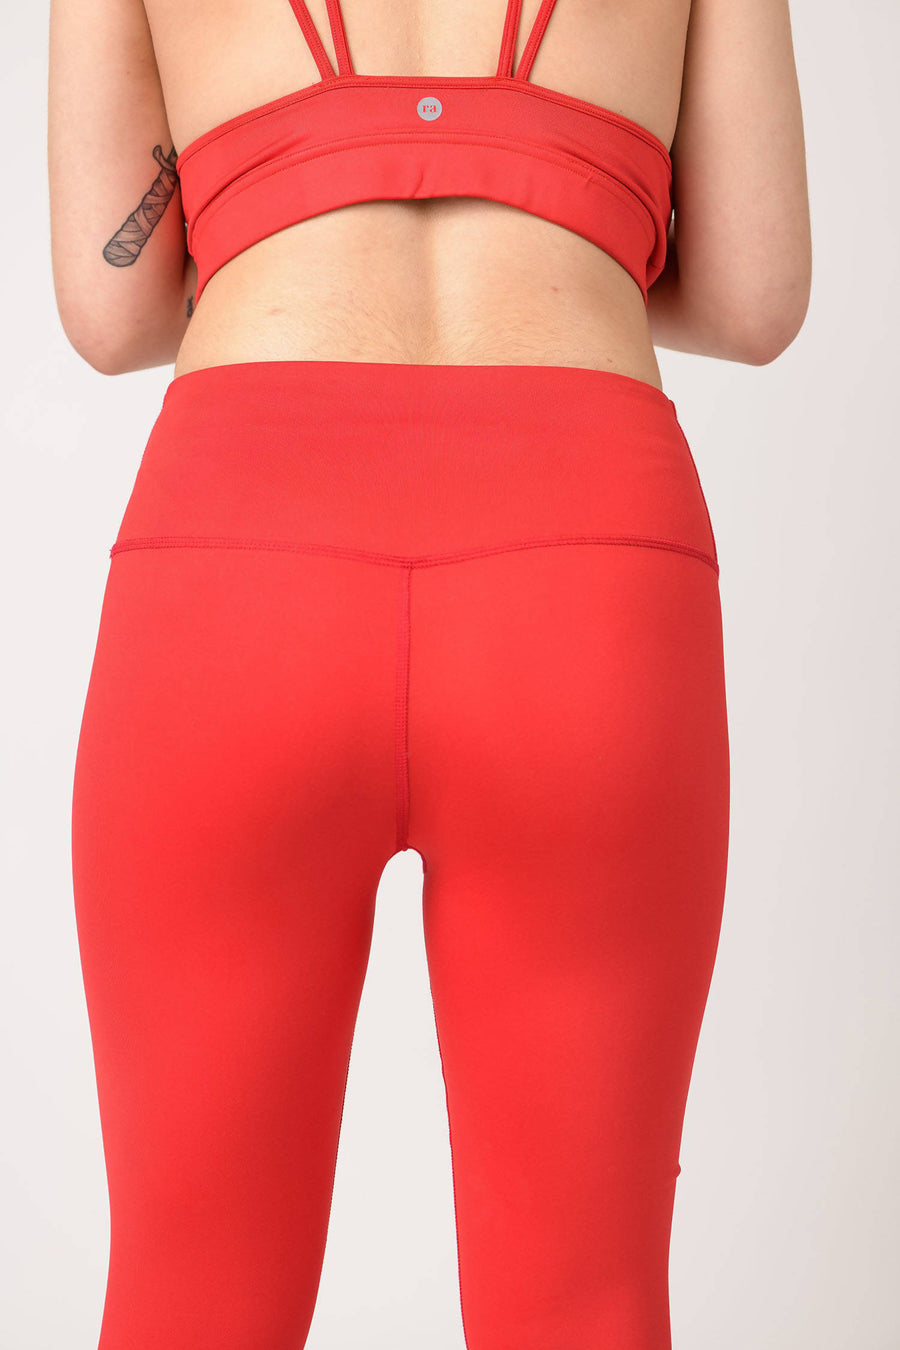 High Waisted Leggings with Hidden Pockets in Fire Red | Made from Recycled Plastic Bottles